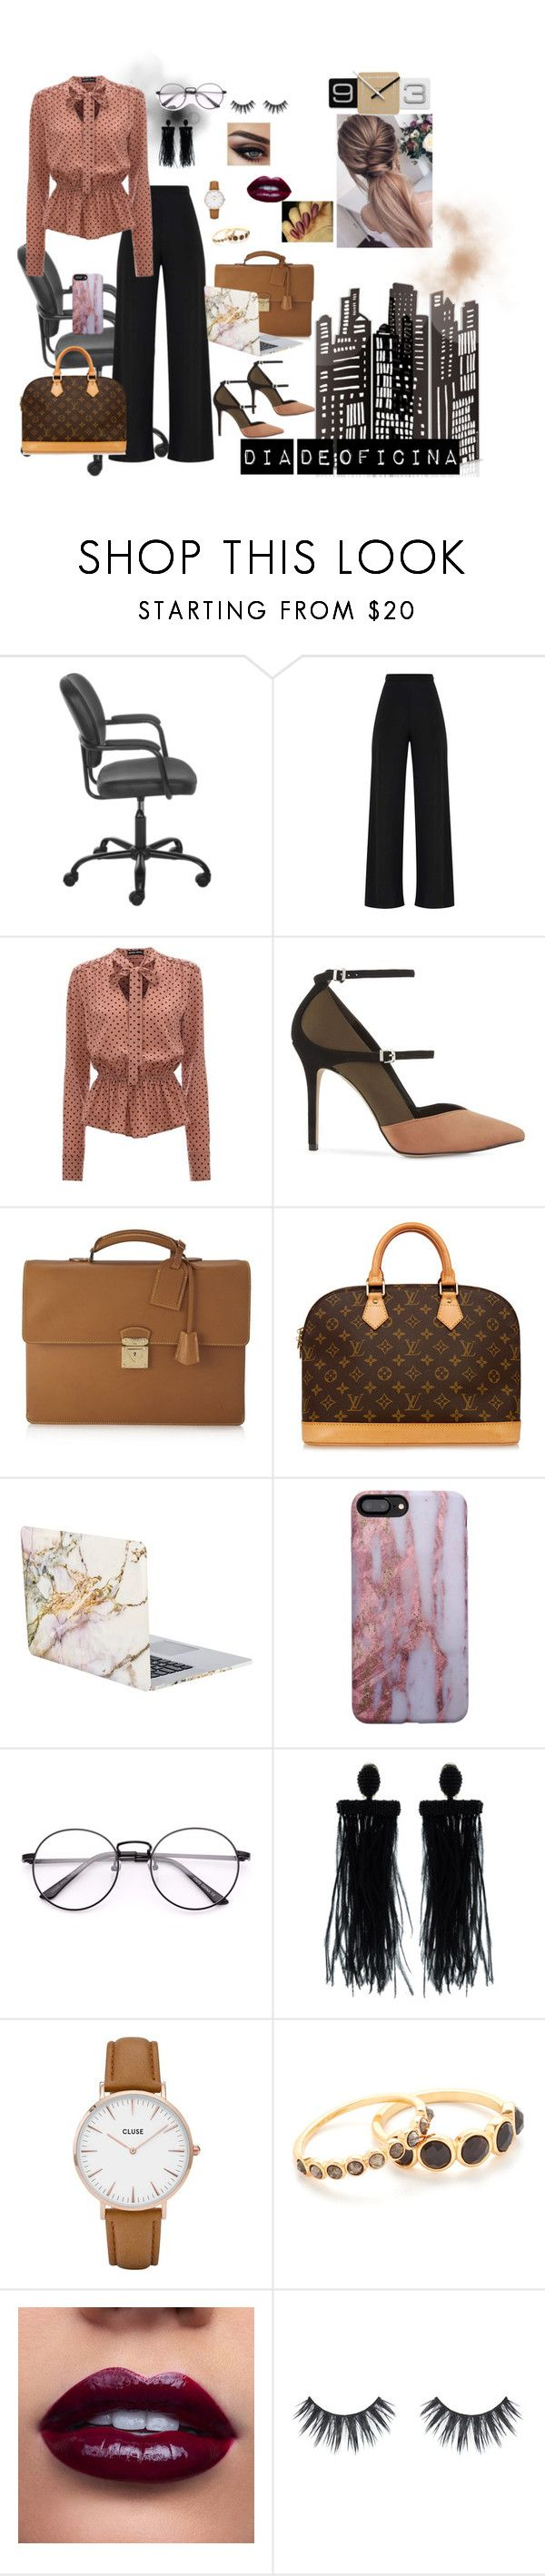 """""""Dia de Oficina"""" by izmenigarza ❤ liked on Polyvore featuring Reiss, Louis Vuitton, iHome, Oscar de la Renta, CLUSE, Gorjana, BeautyTrend, SimpleOutfits, office and lovely"""